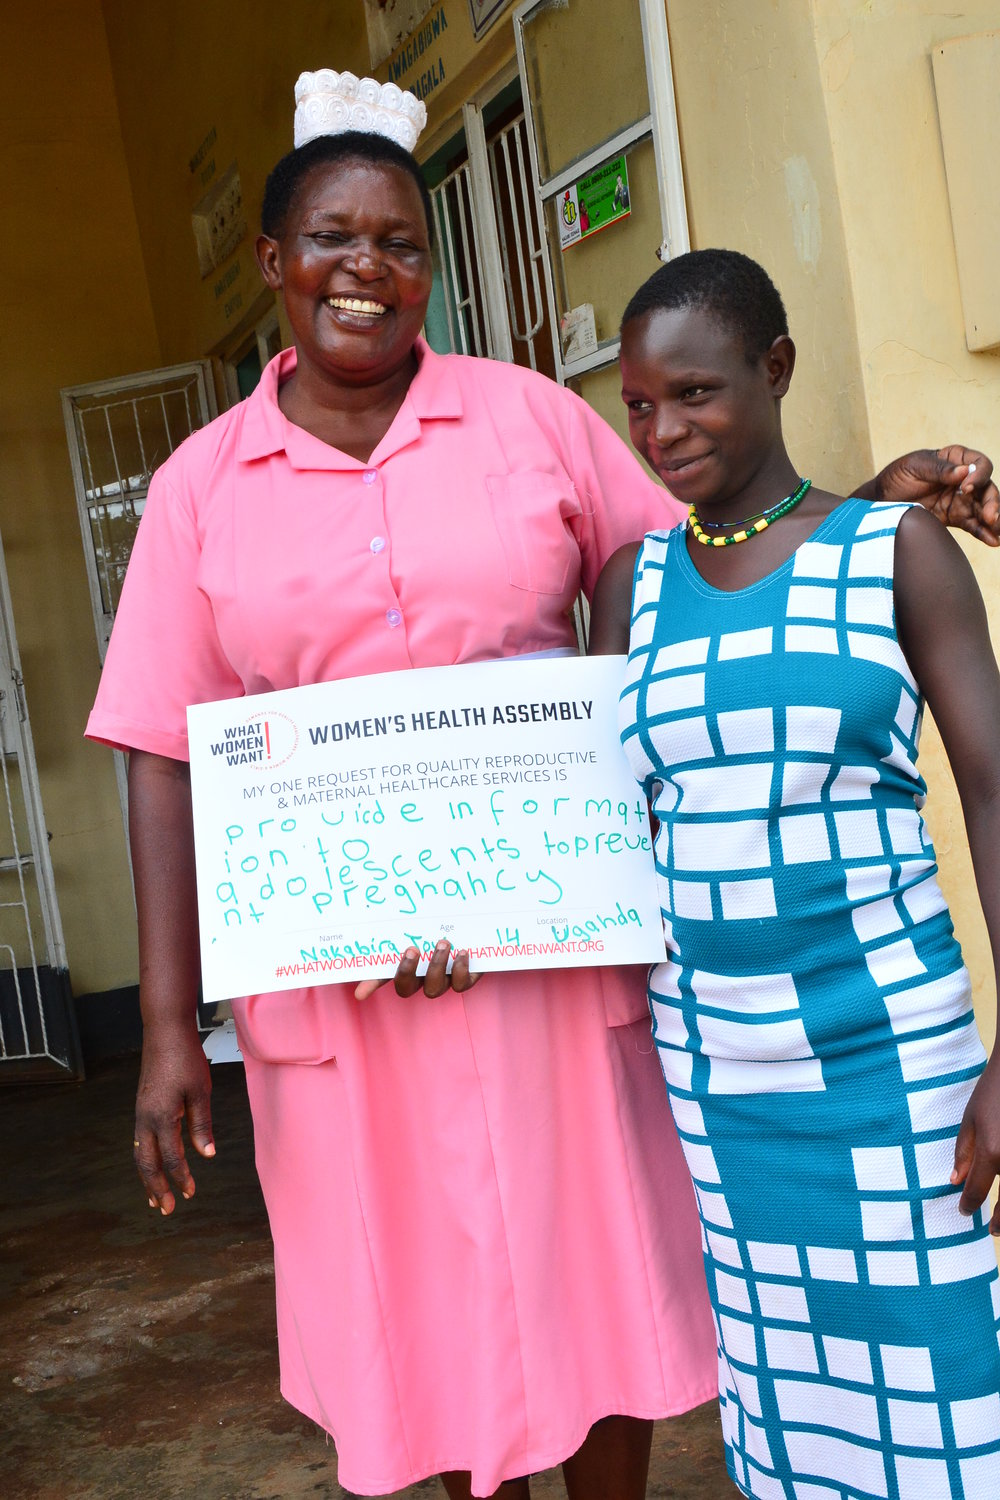 At 14, Nakabira Joan is five months pregnant. She dropped out of school due to lack of scholastic materials. She got pregnant and her father told her to stay with the man who impregnated her. She is now staying with her 'husband.' She believes if she had information about preventing pregnancy, she would not have got pregnant. Her priority ask for quality reproductive and maternal healthcare services: Provide information to adolescents to prevent teenage pregnancy.